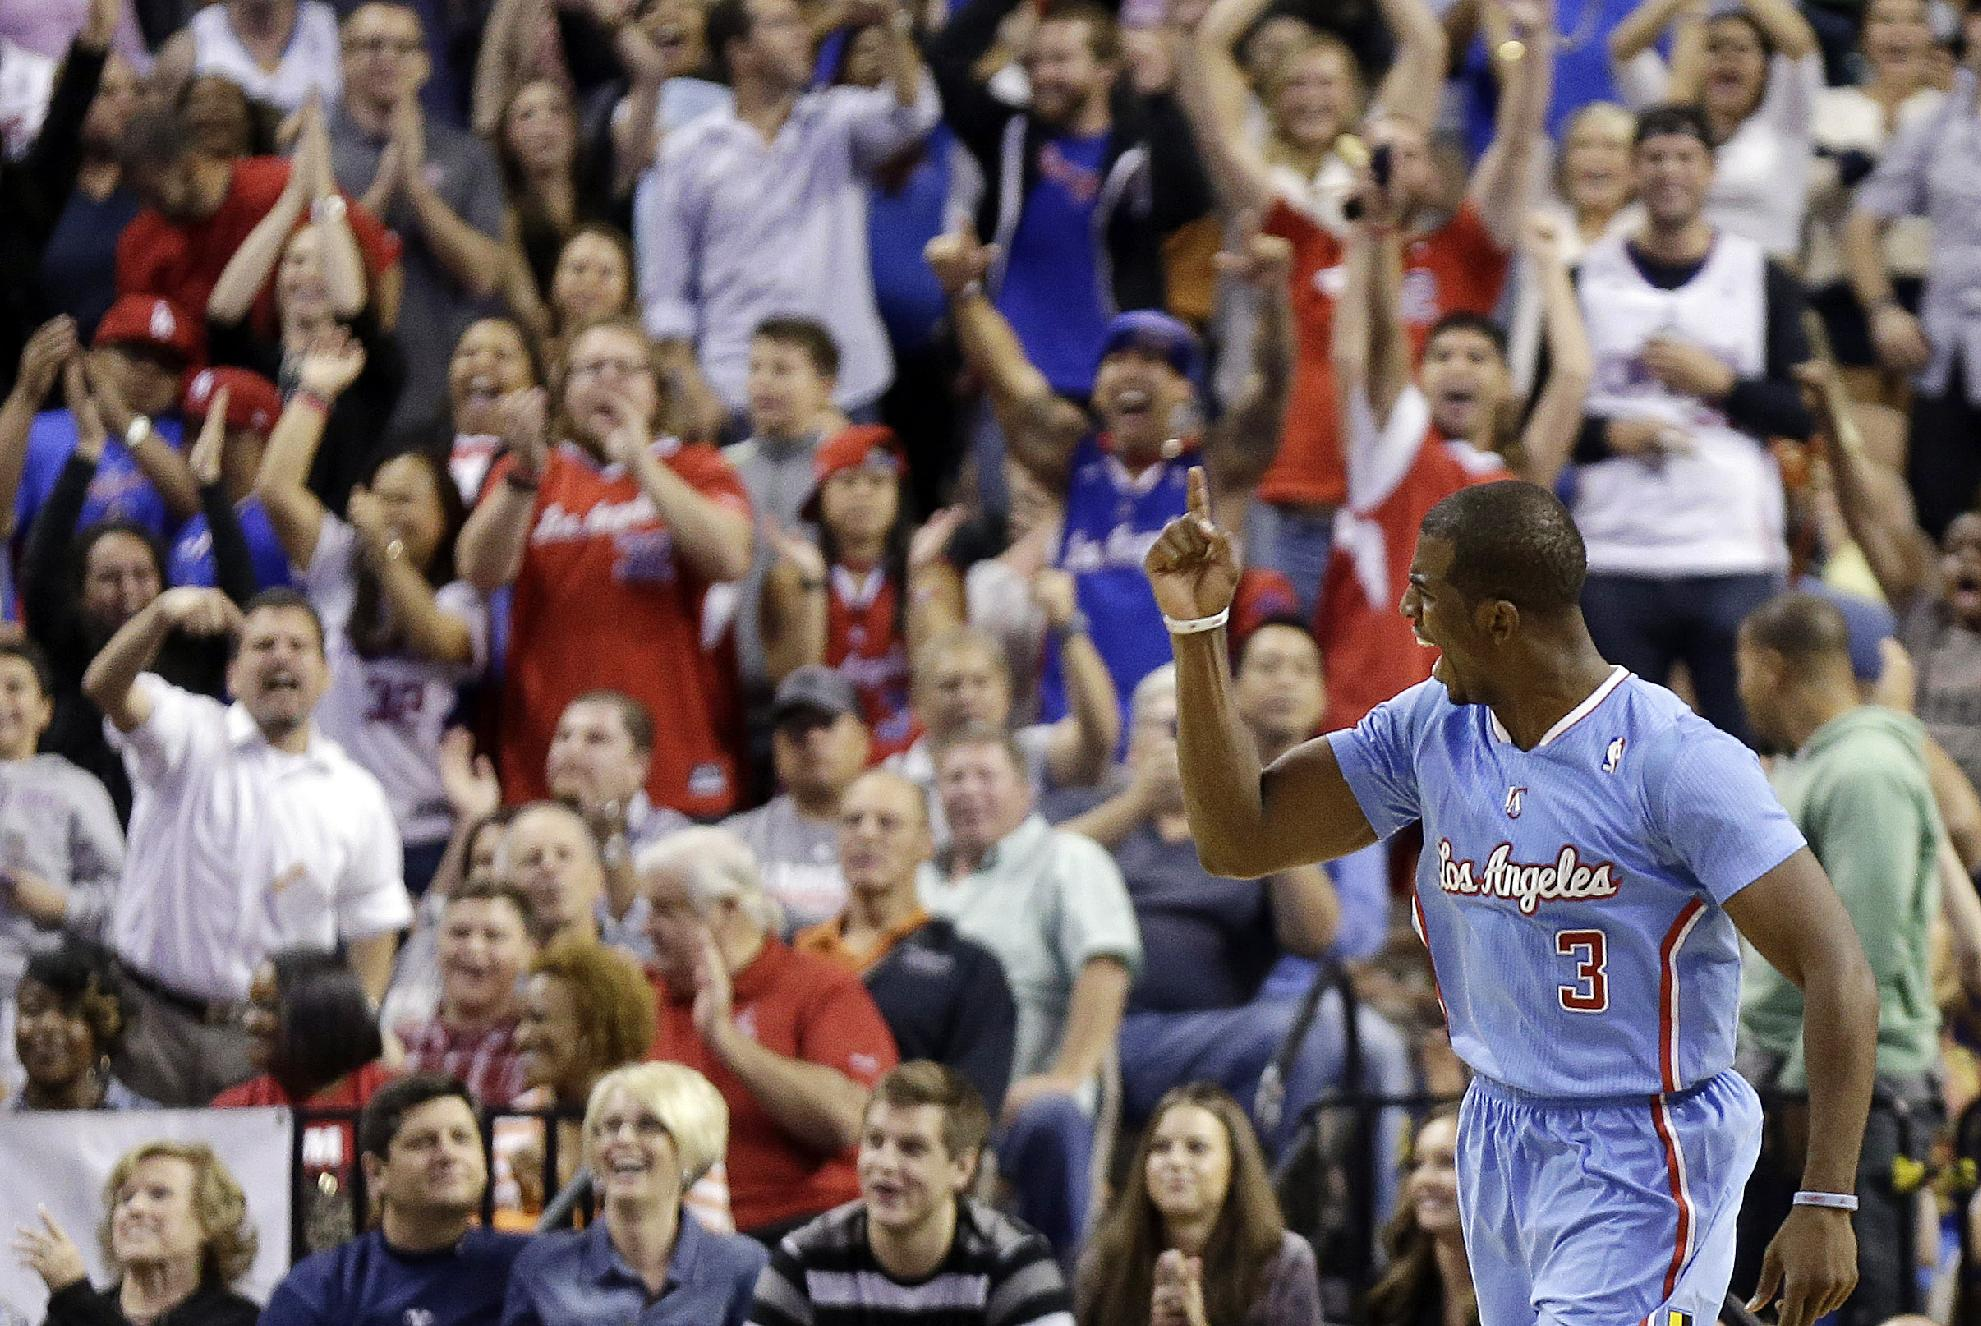 The Los Angeles Clippers' Chris Paul celebrates sinking a game-tying shot during the final seconds of the second half of a preseason NBA basketball game against the Denver Nuggets on Saturday, Oct. 19, 2013, in Las Vegas. The Clippers went on to defeat the Nuggets in overtime 118-111